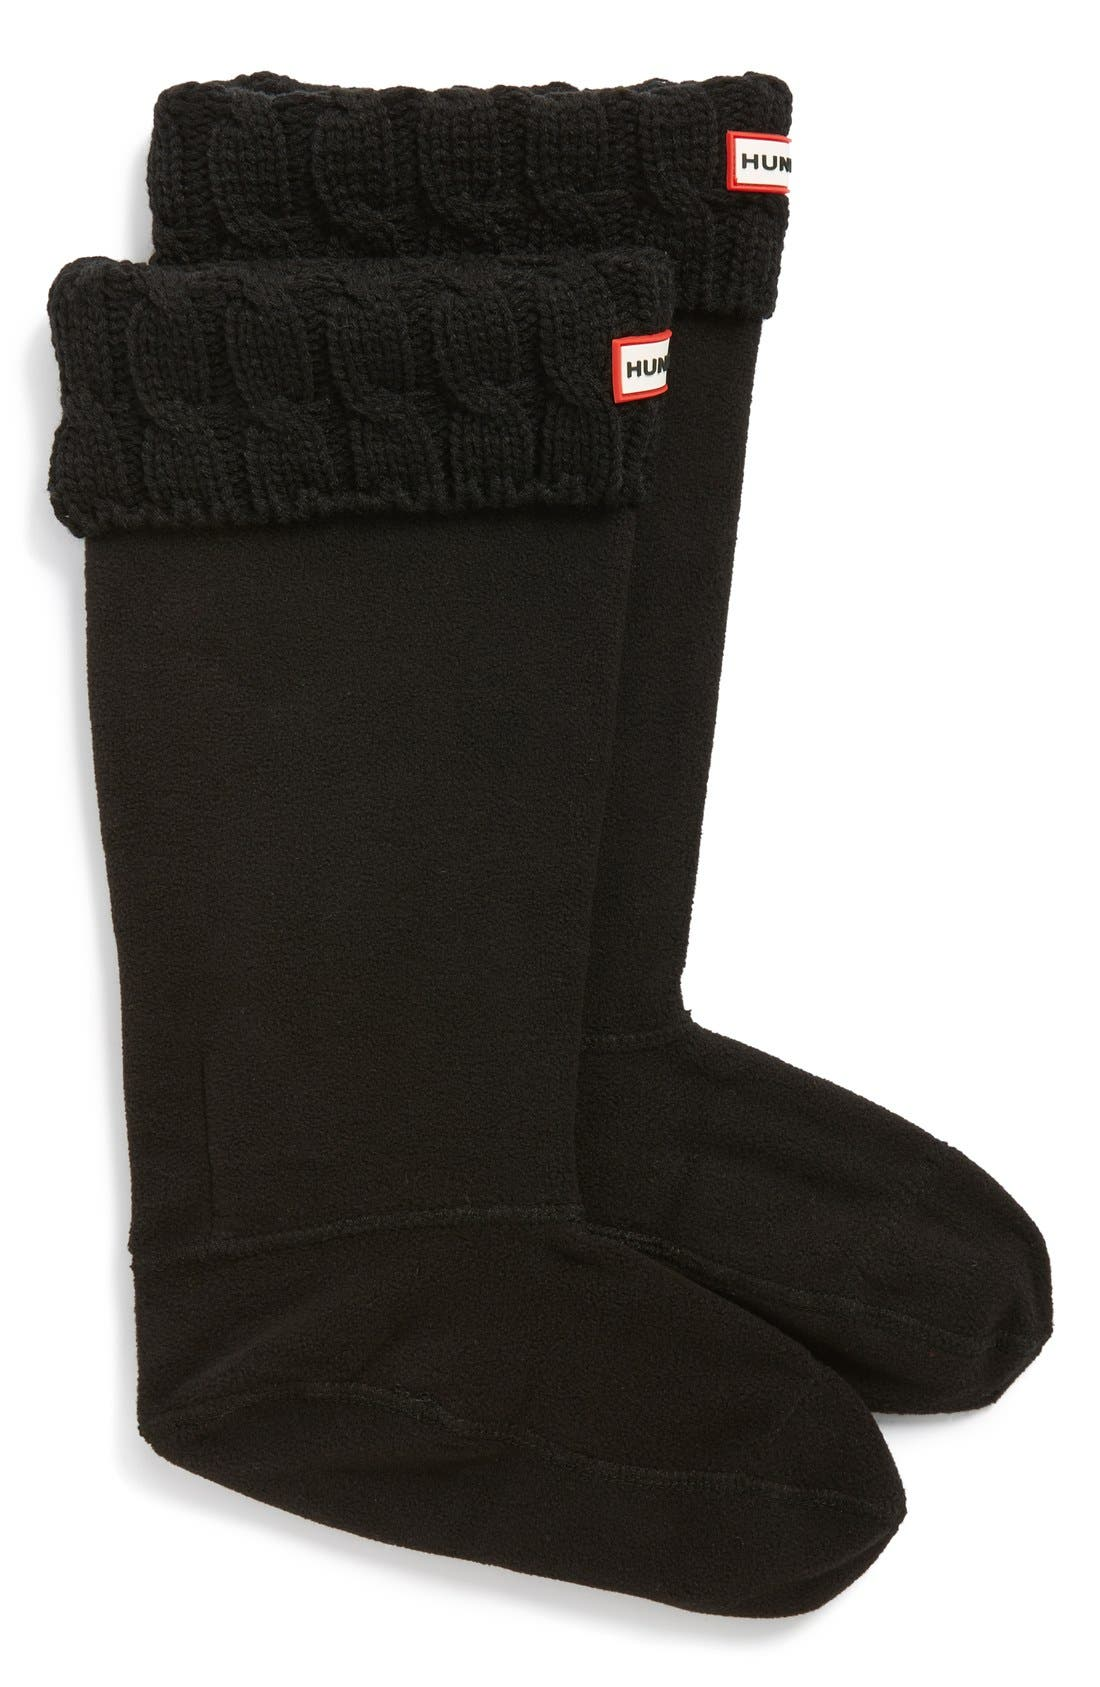 Original Tall Cable Knit Cuff Welly Boot Socks,                         Main,                         color, Black